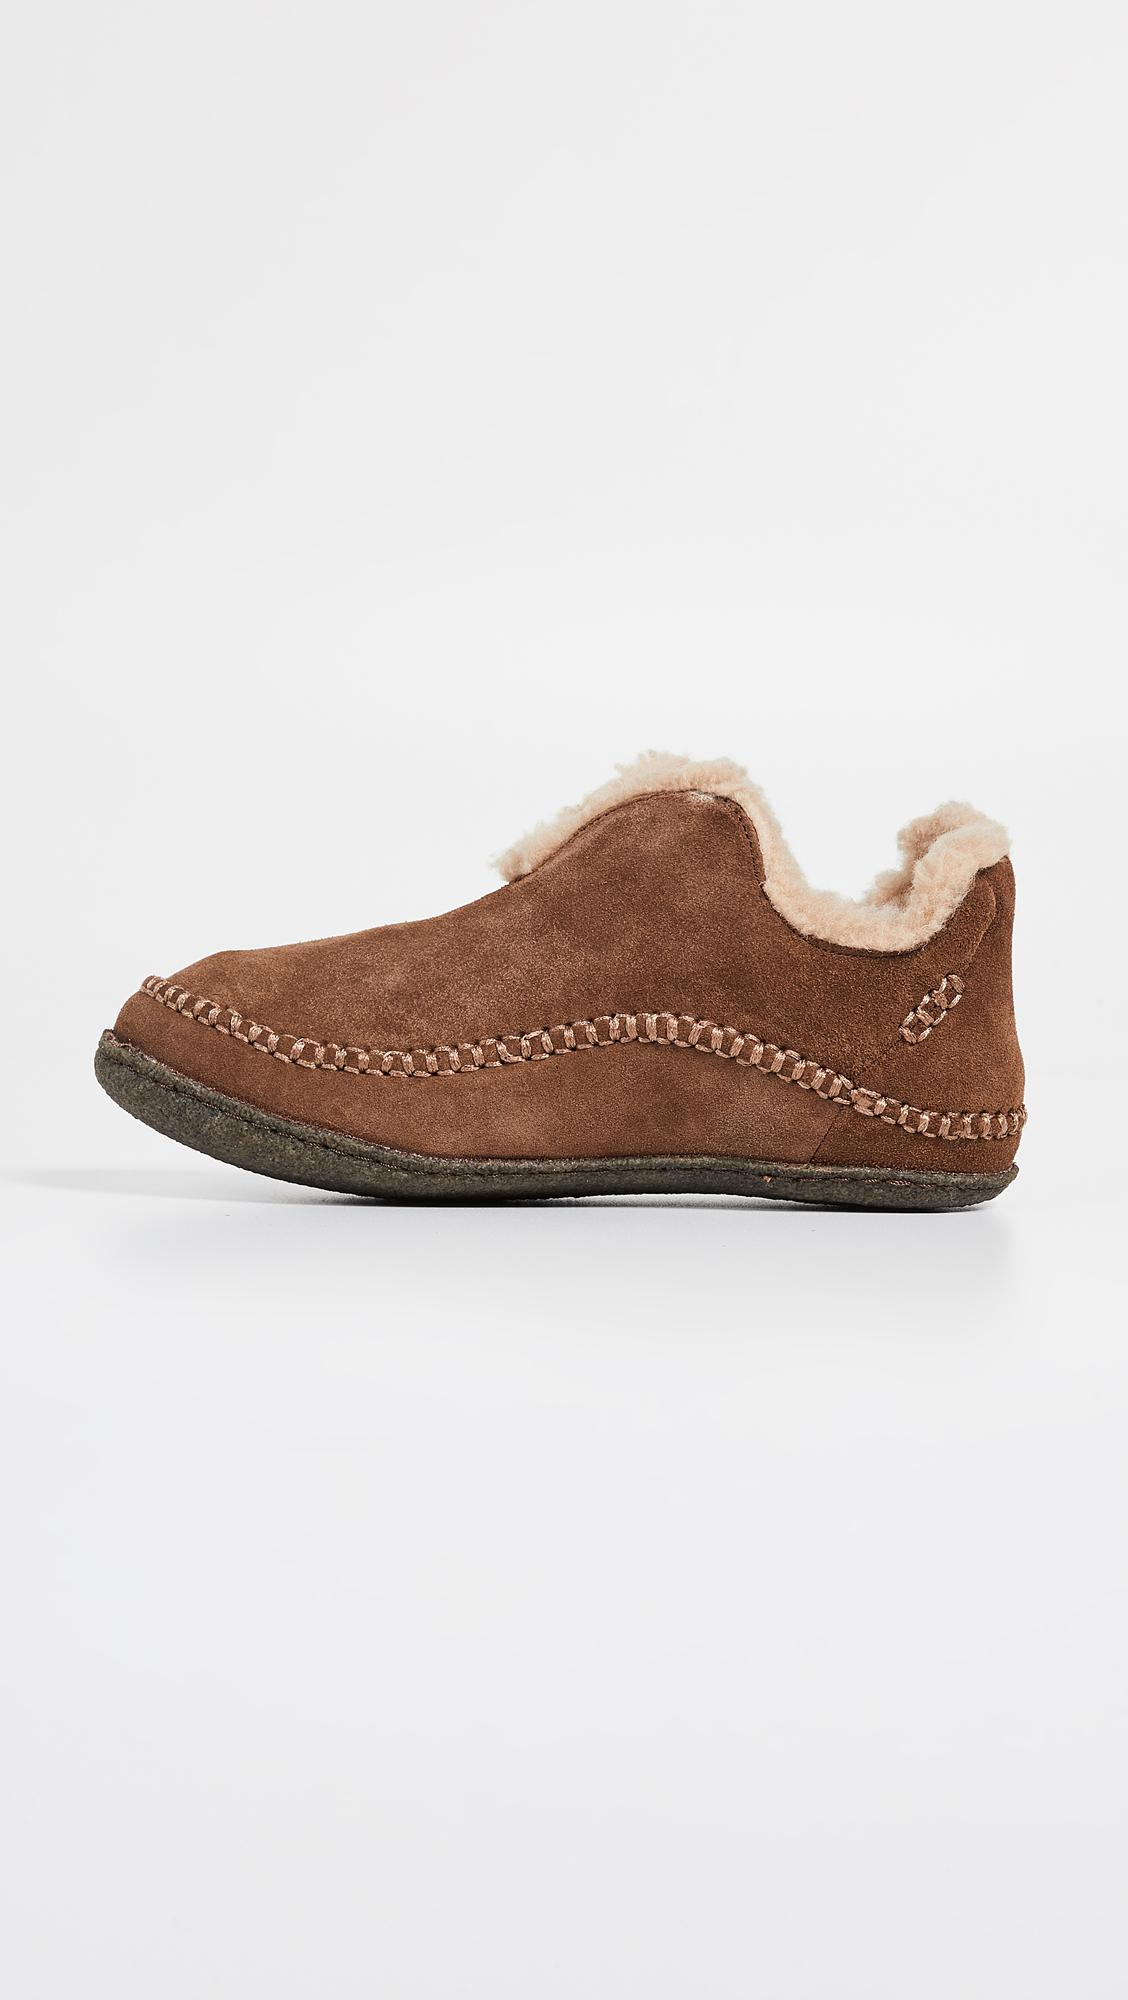 a32dccc07da0 Sorel - Brown Manawan Slippers for Men - Lyst. View fullscreen